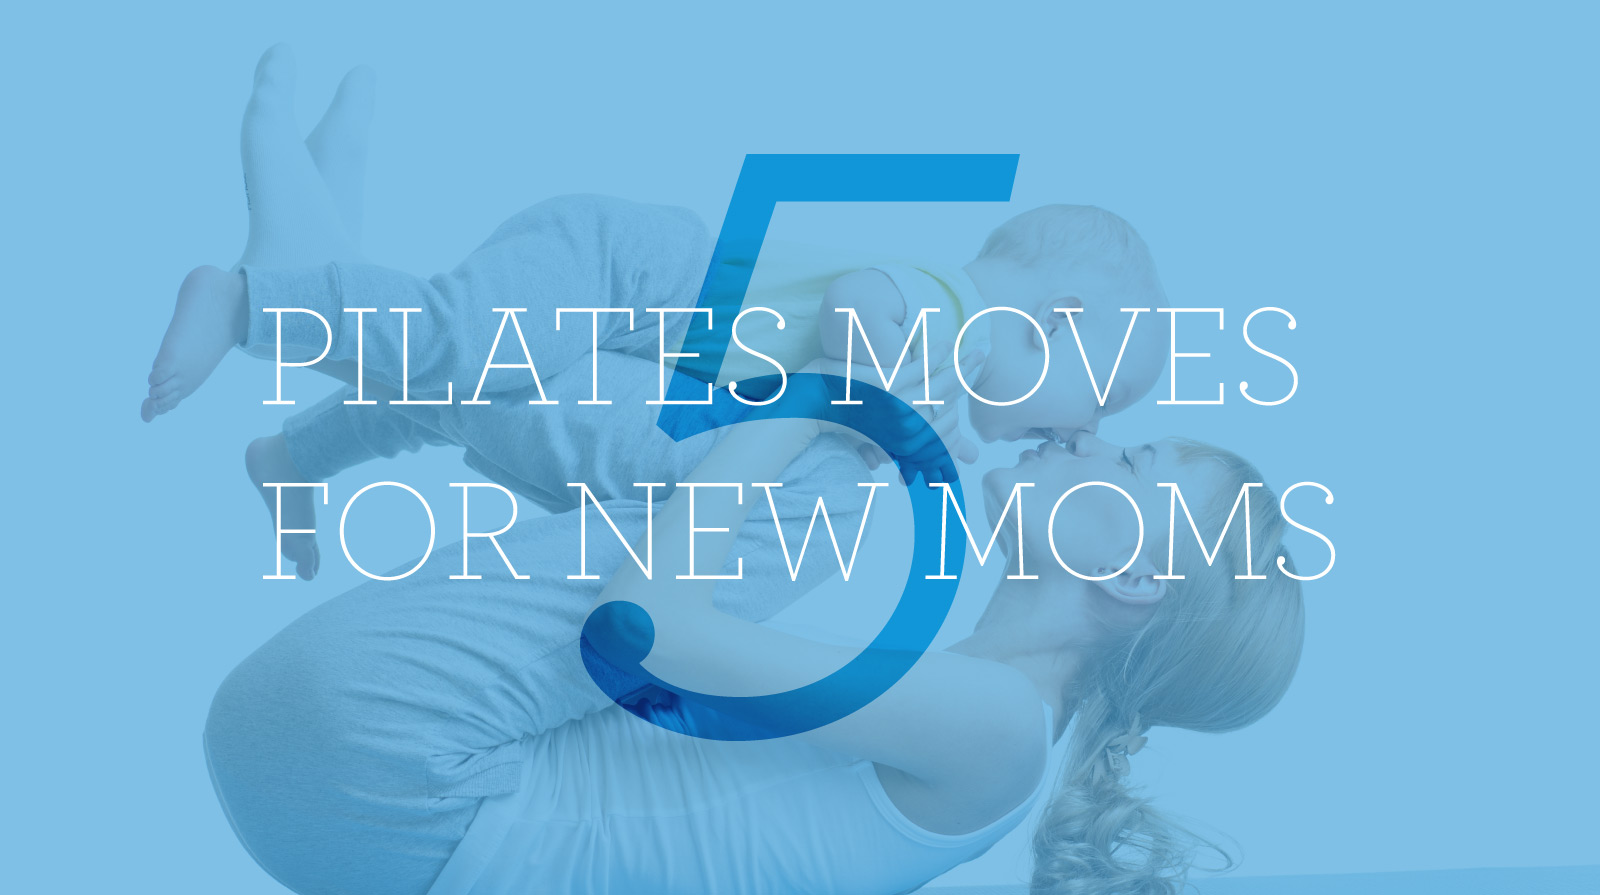 Picture of mother and baby on pilates mat under title five pilates moves for new moms